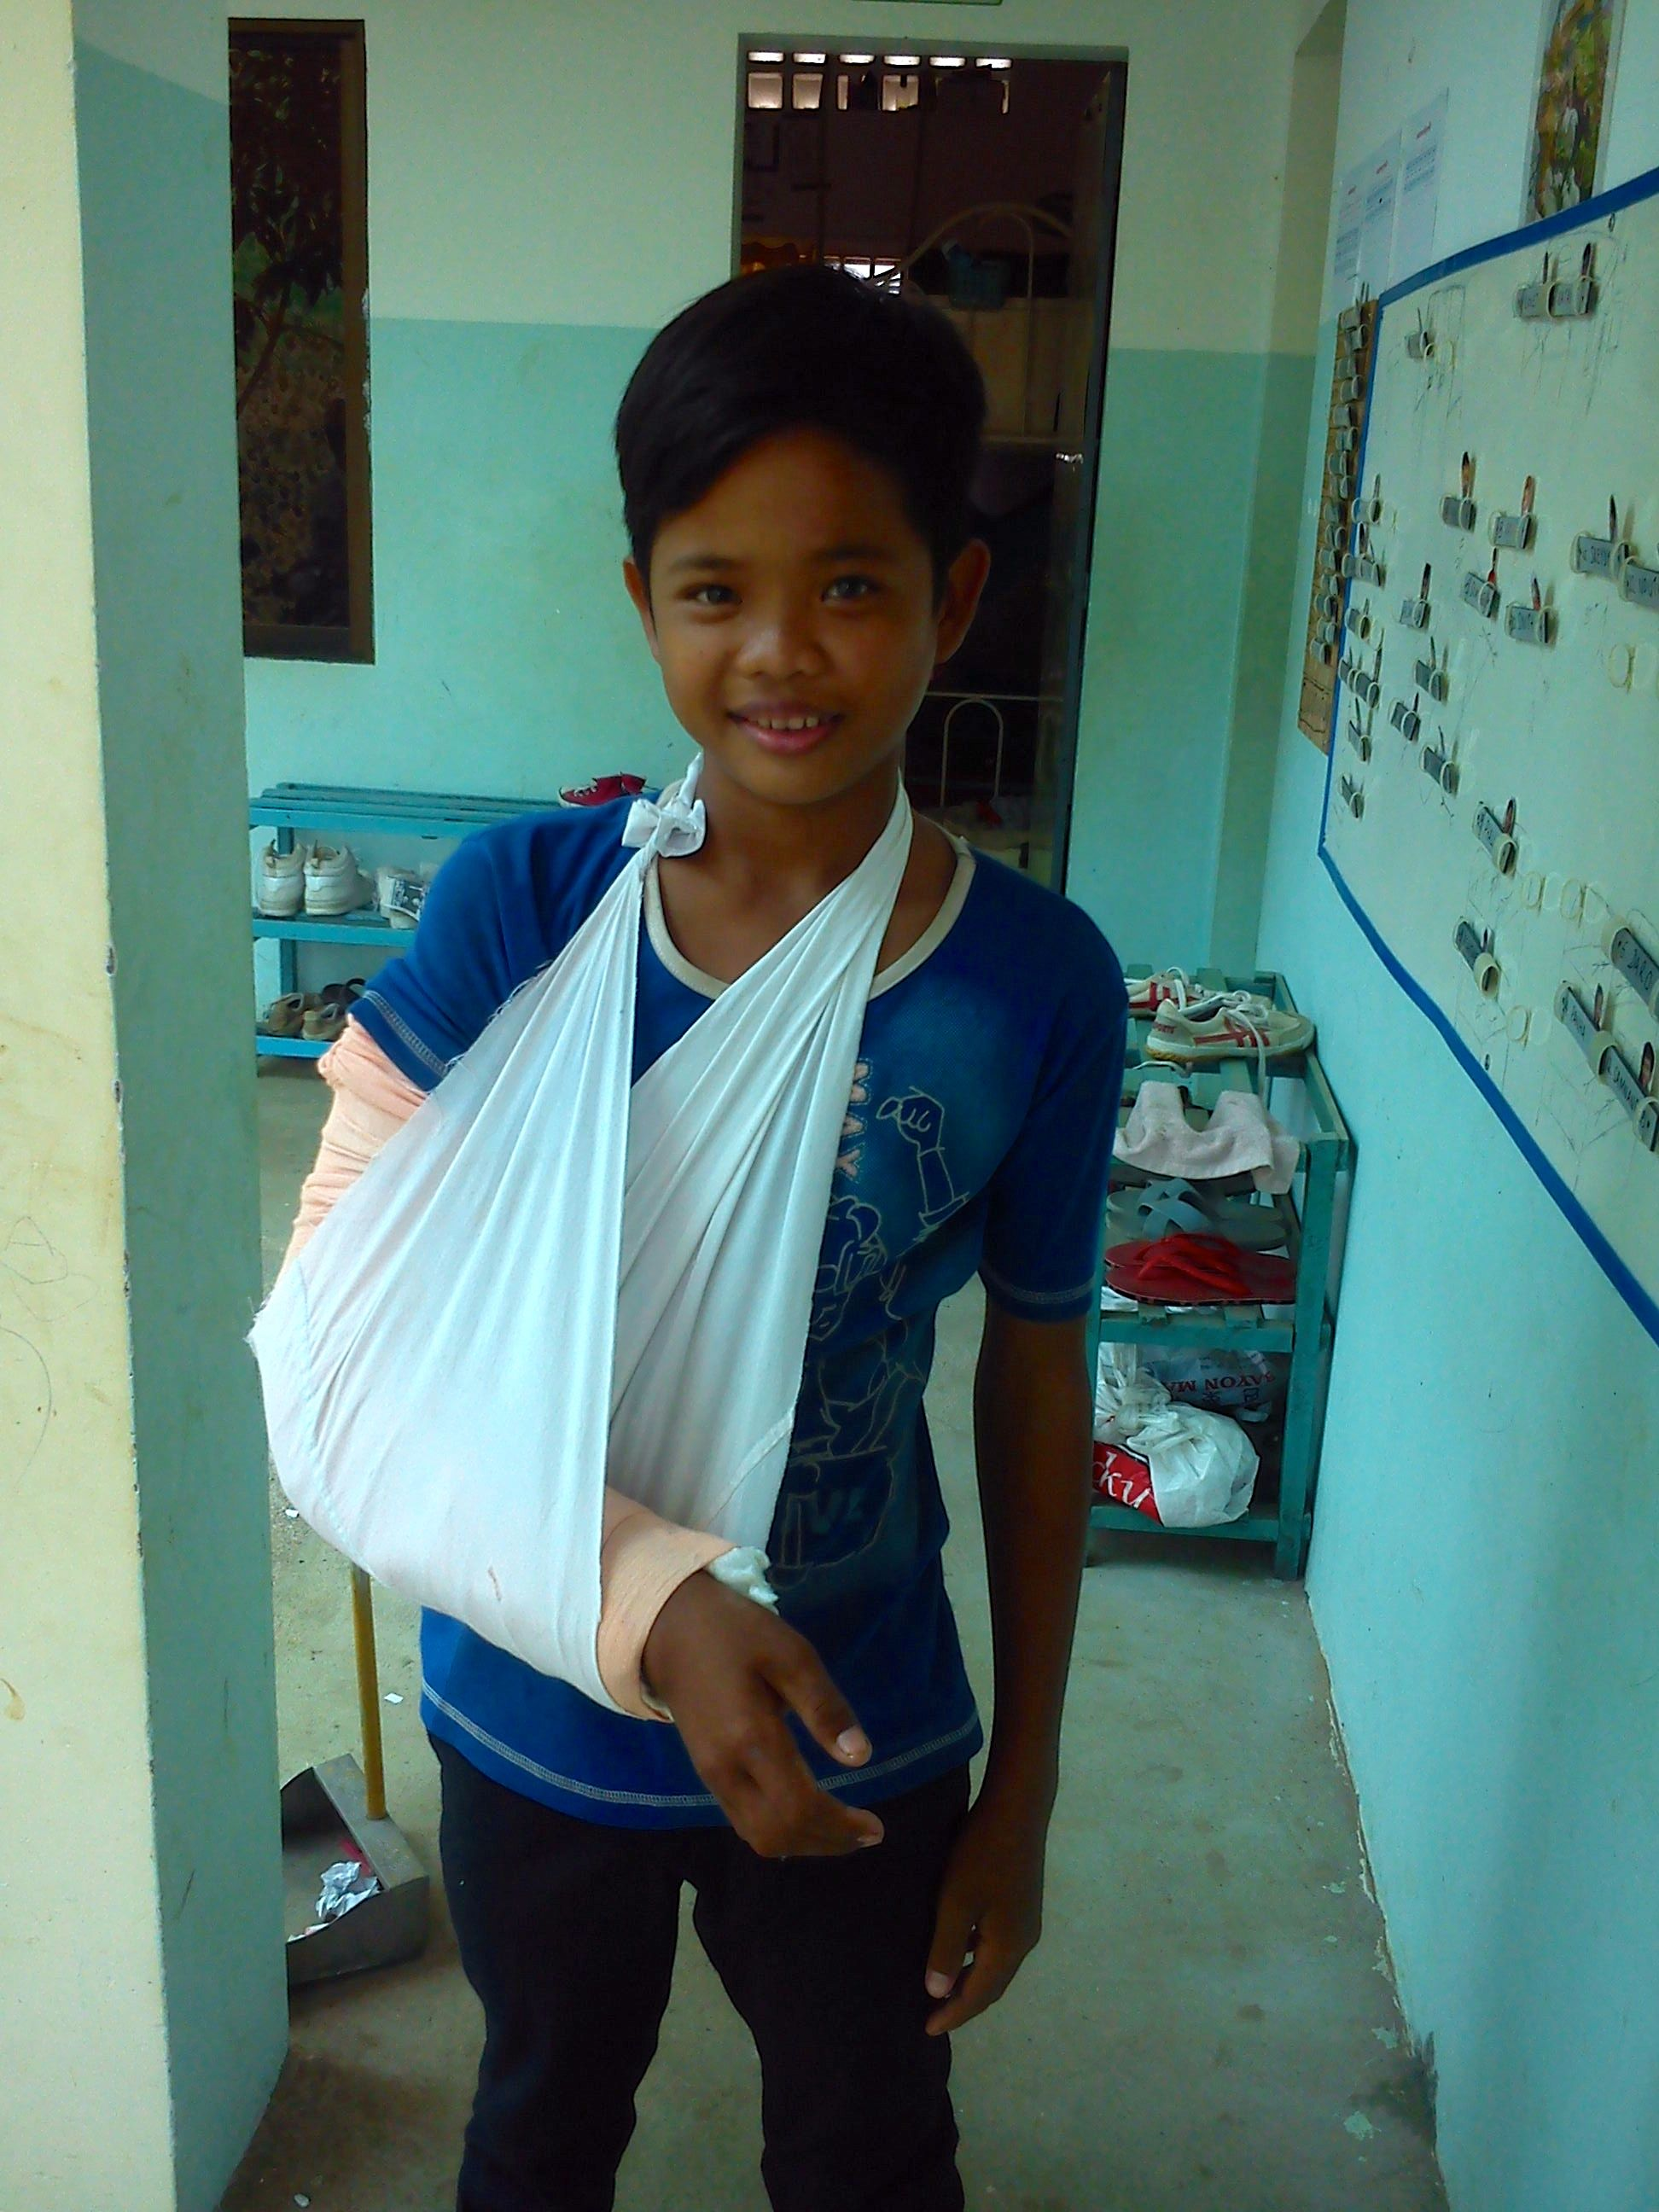 There are very few good hospitals in Cambodia. When accidents or illness happen, often the first solutions that come to orphanages is to bring the kids to a local clinic. One of our boys fell off his bed while play-fighting with his friends. The orphanage staff took him to a locale clinic at first. The following day, was the boy to the best hospital in country. The boy has indeed gotten an operation, and stayed 12 days in the Kanta Bopha facilities. The procedure went well.